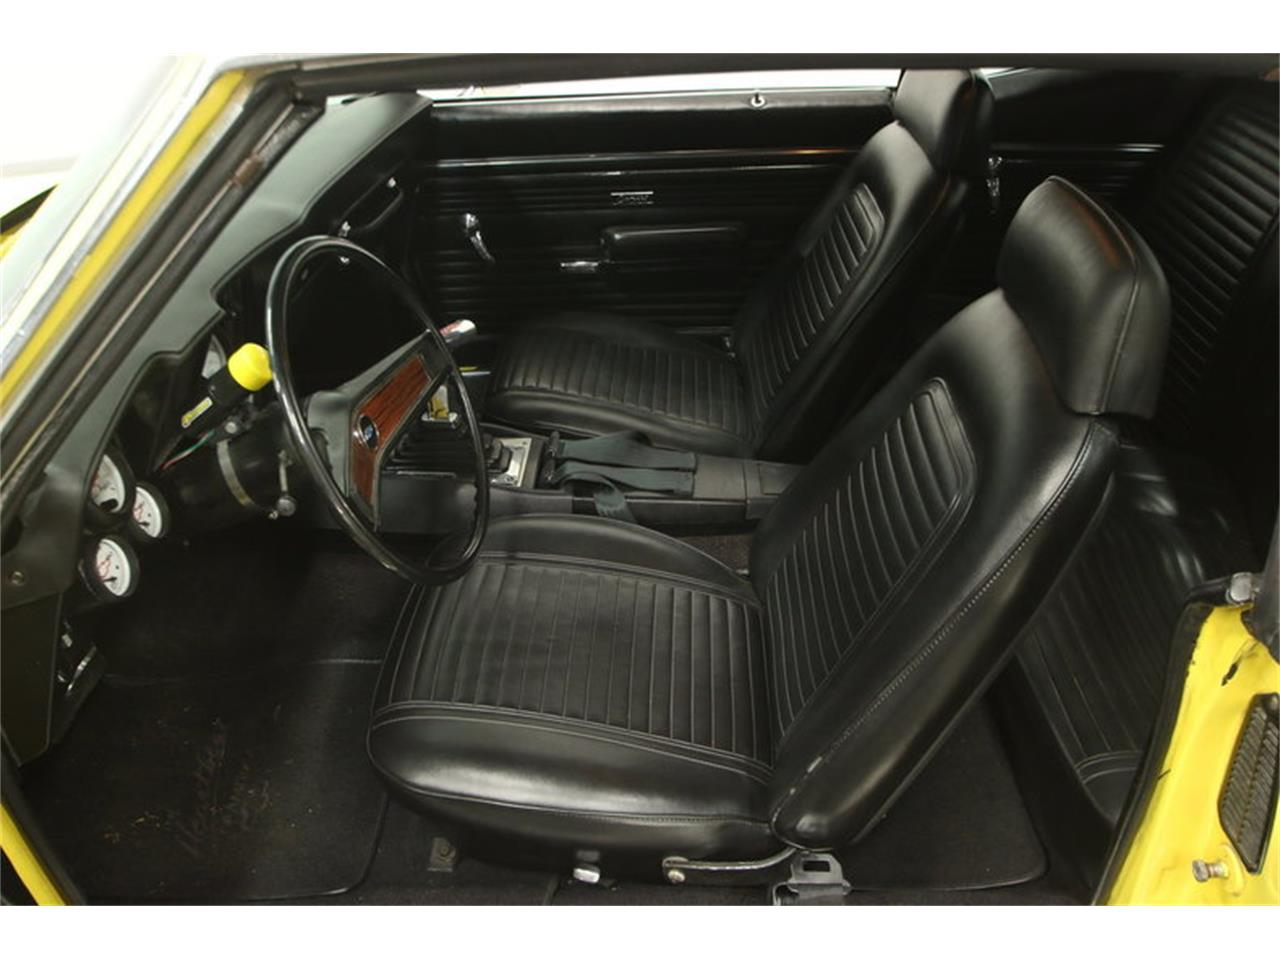 Large Picture of 1969 Chevrolet Camaro located in Florida - $39,995.00 Offered by Streetside Classics - Tampa - L45U